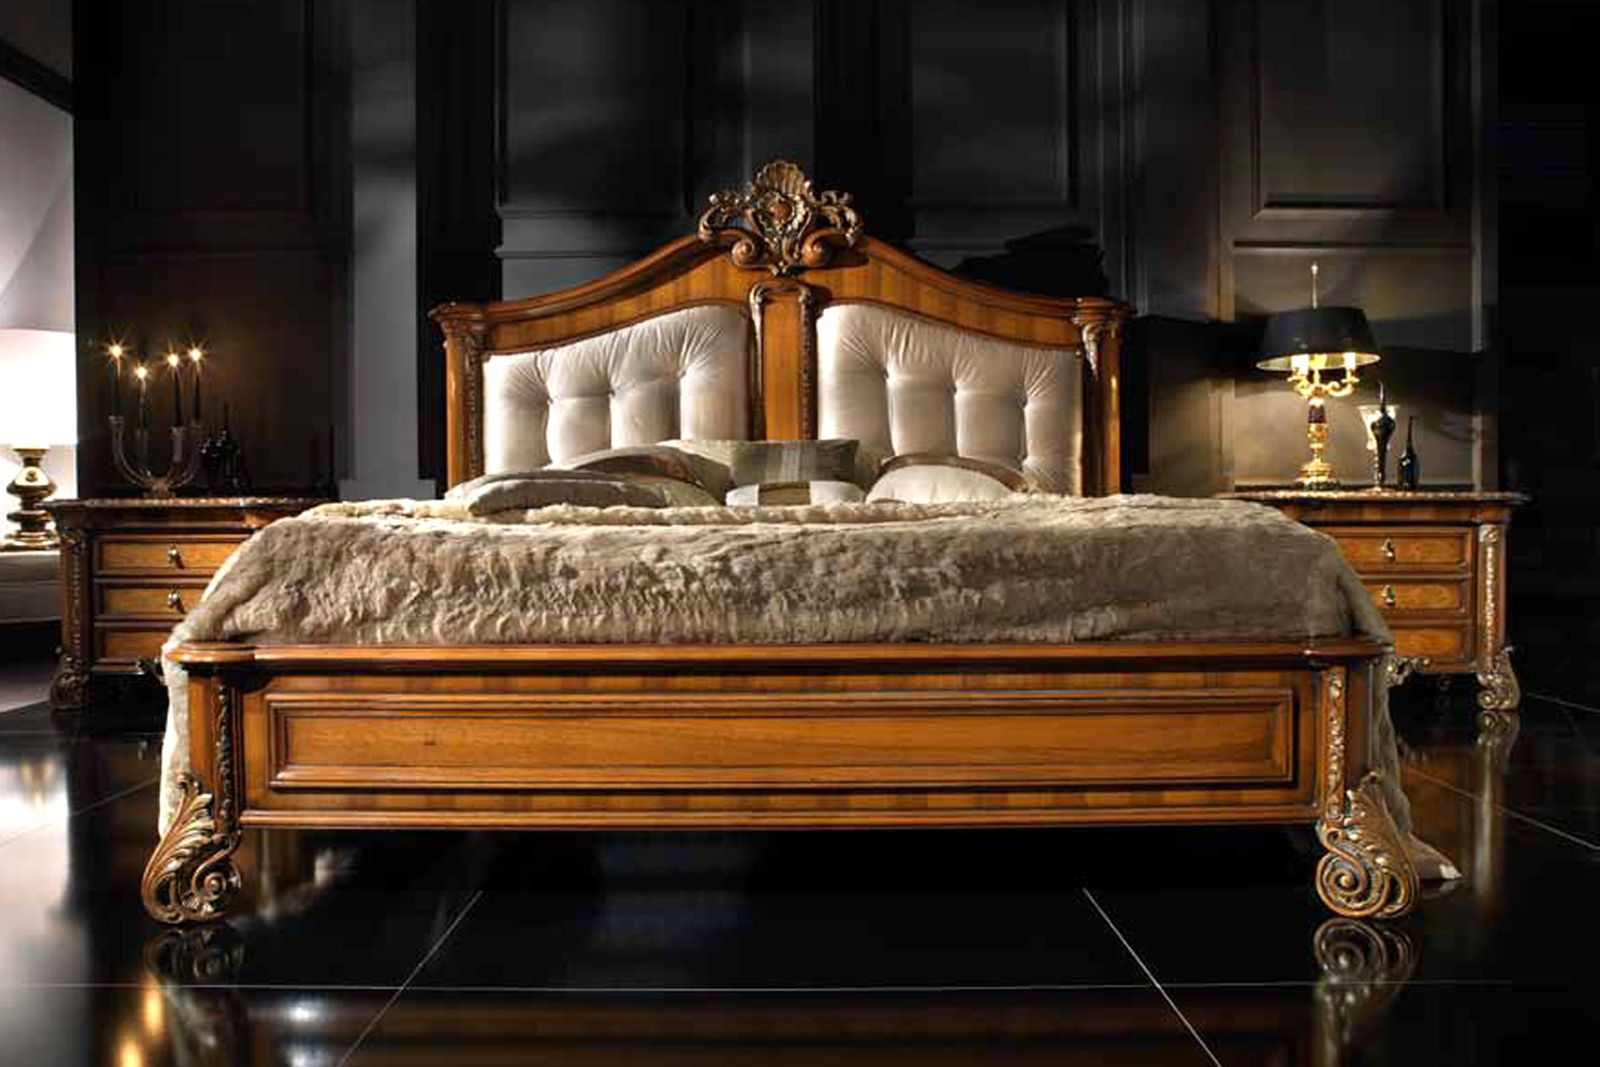 bedrooms furniture stores. Contemporary Bedrooms Luxury Bedroom Italian Furniture   Italian Bedroom Furniture Designer  Luxury Furniture  High For Bedrooms Stores R